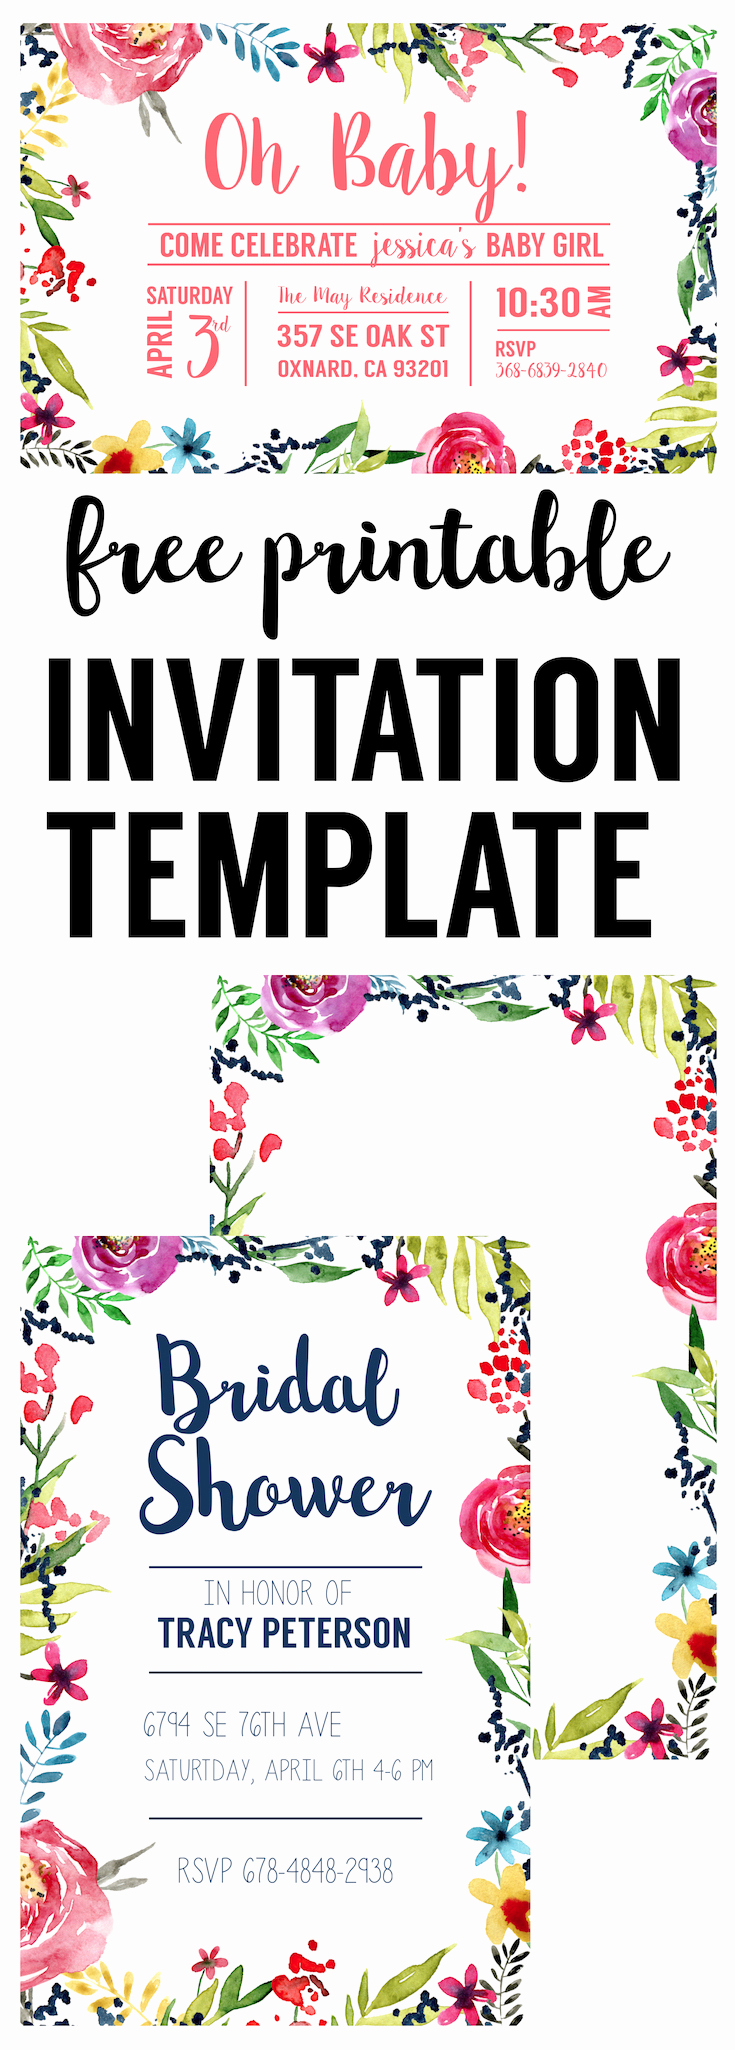 Free Printable Invitation Templates Awesome Floral Borders Invitations Free Printable Invitation